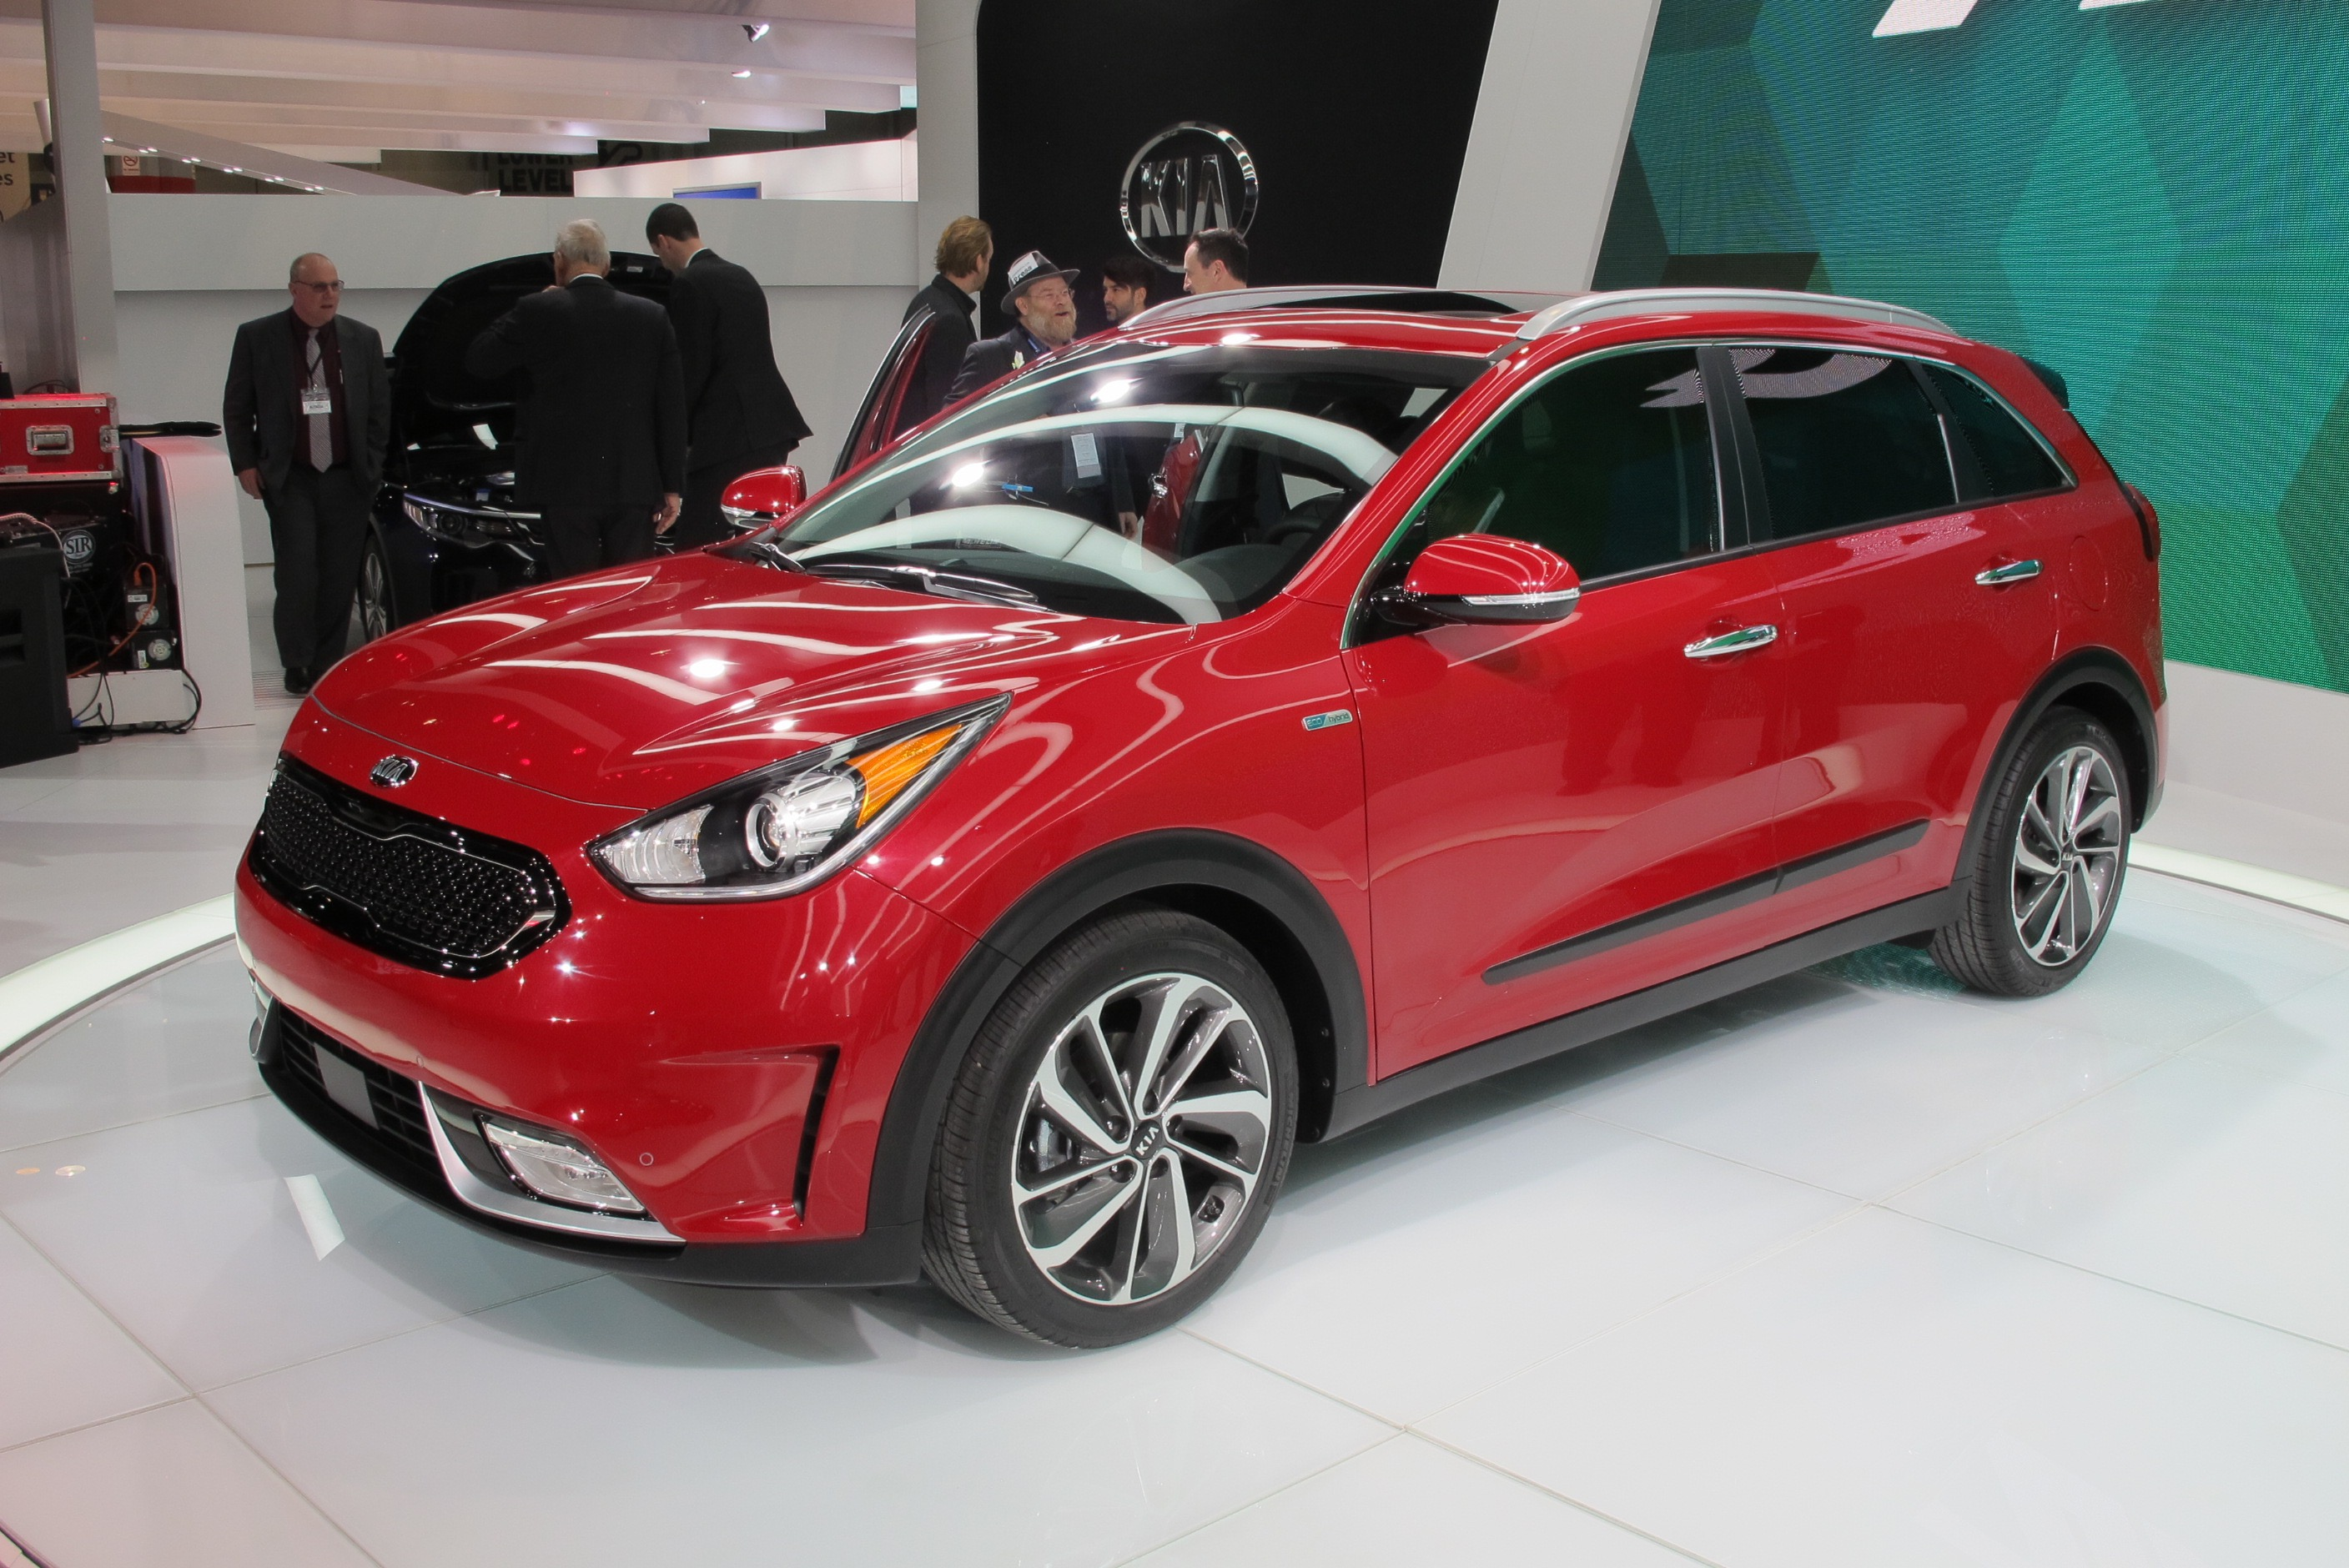 2017 Kia Niro Hybrid Crossover Utility Vehicle Debuts At ...